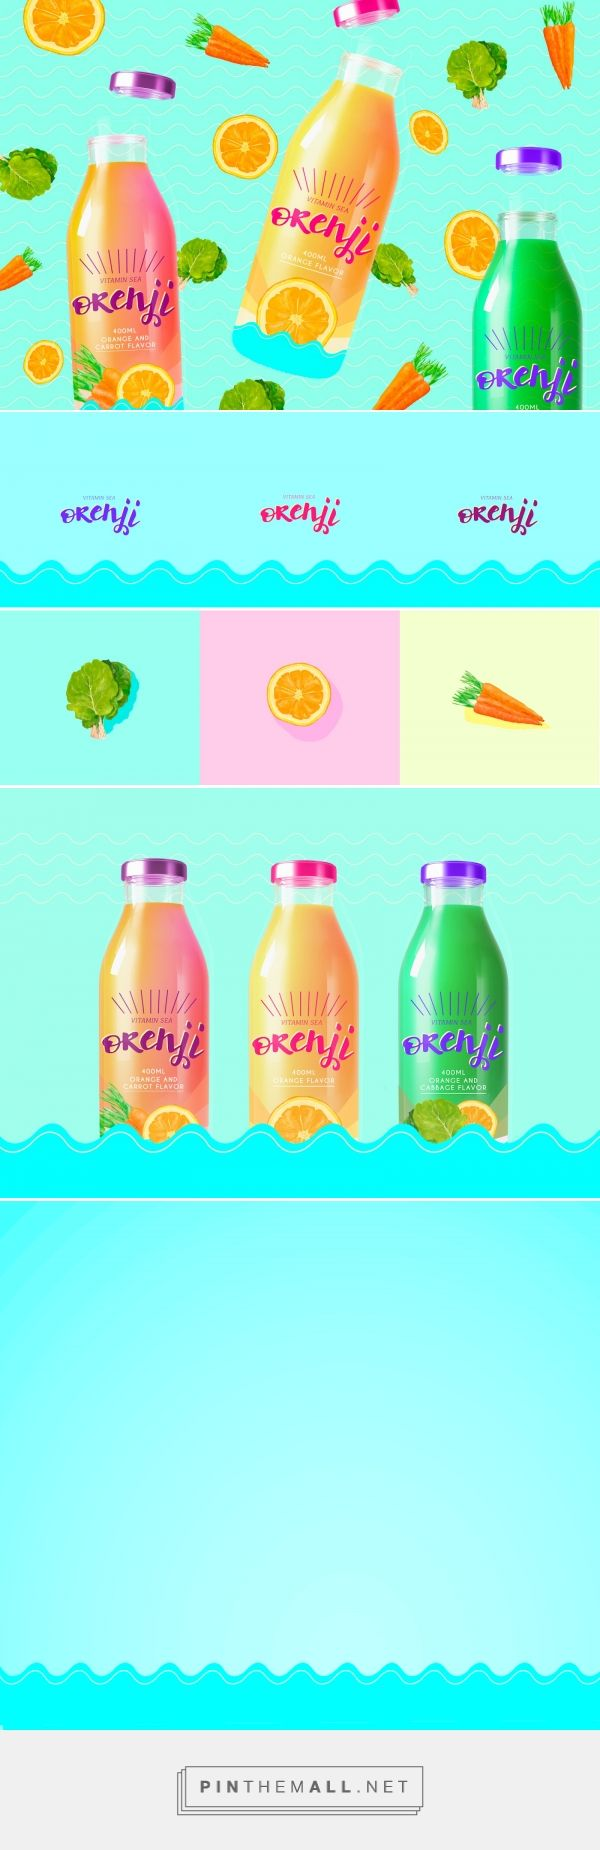 Orenji Vitamin Sea - Natural Juice - Packaging of the World - Creative Package Design Gallery - http://www.packagingoftheworld.com/2016/07/orenji-vitamin-sea-natural-juice.html